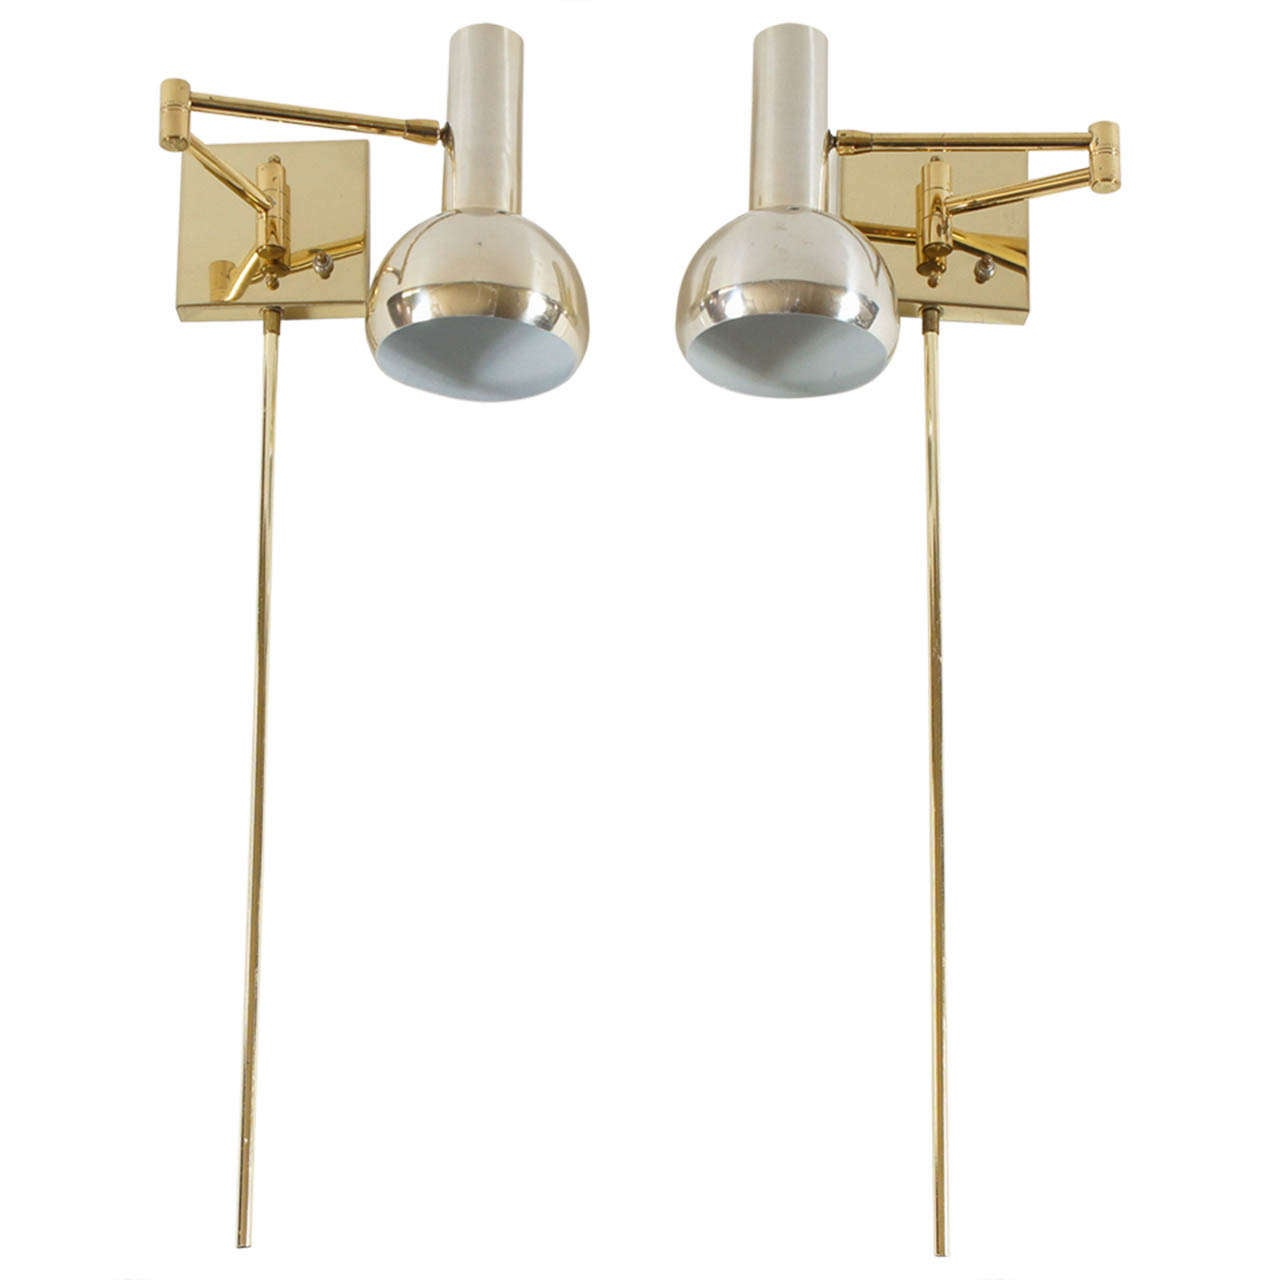 Vintage Brass Swing-Arm Wall Mount Reading Lamps - Italy, c. 1970 at 1stdibs